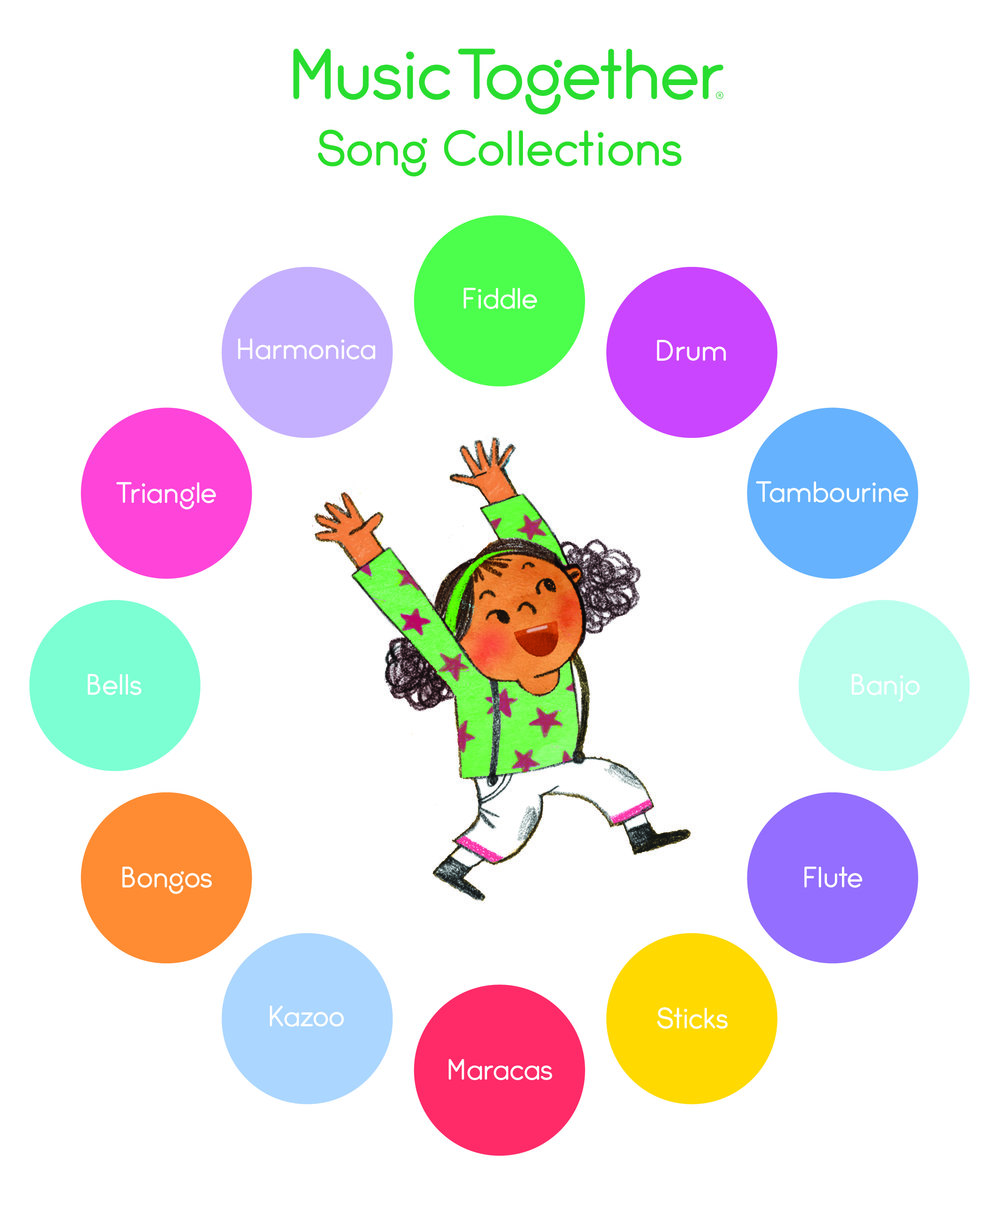 SongCollections-Fiddlegirl_print.jpg